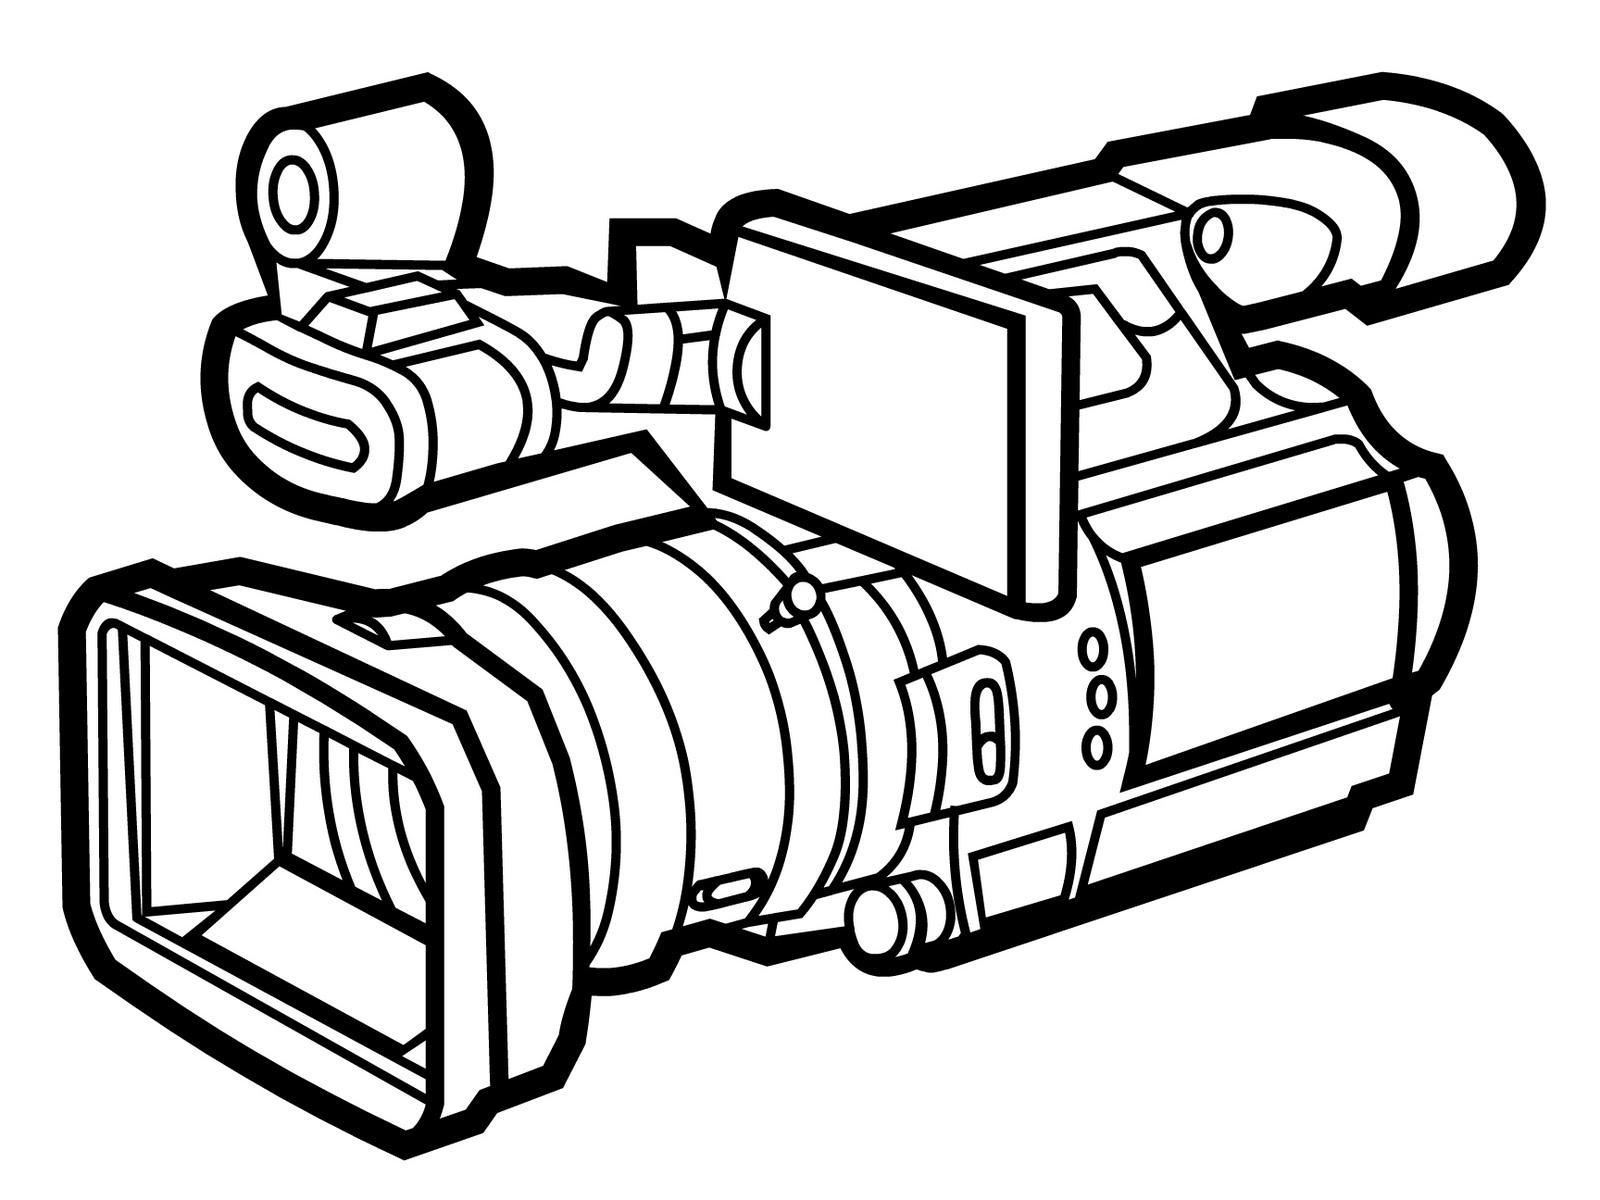 Video Camera Clipart Wallpapers Images : Other Wallpaper.